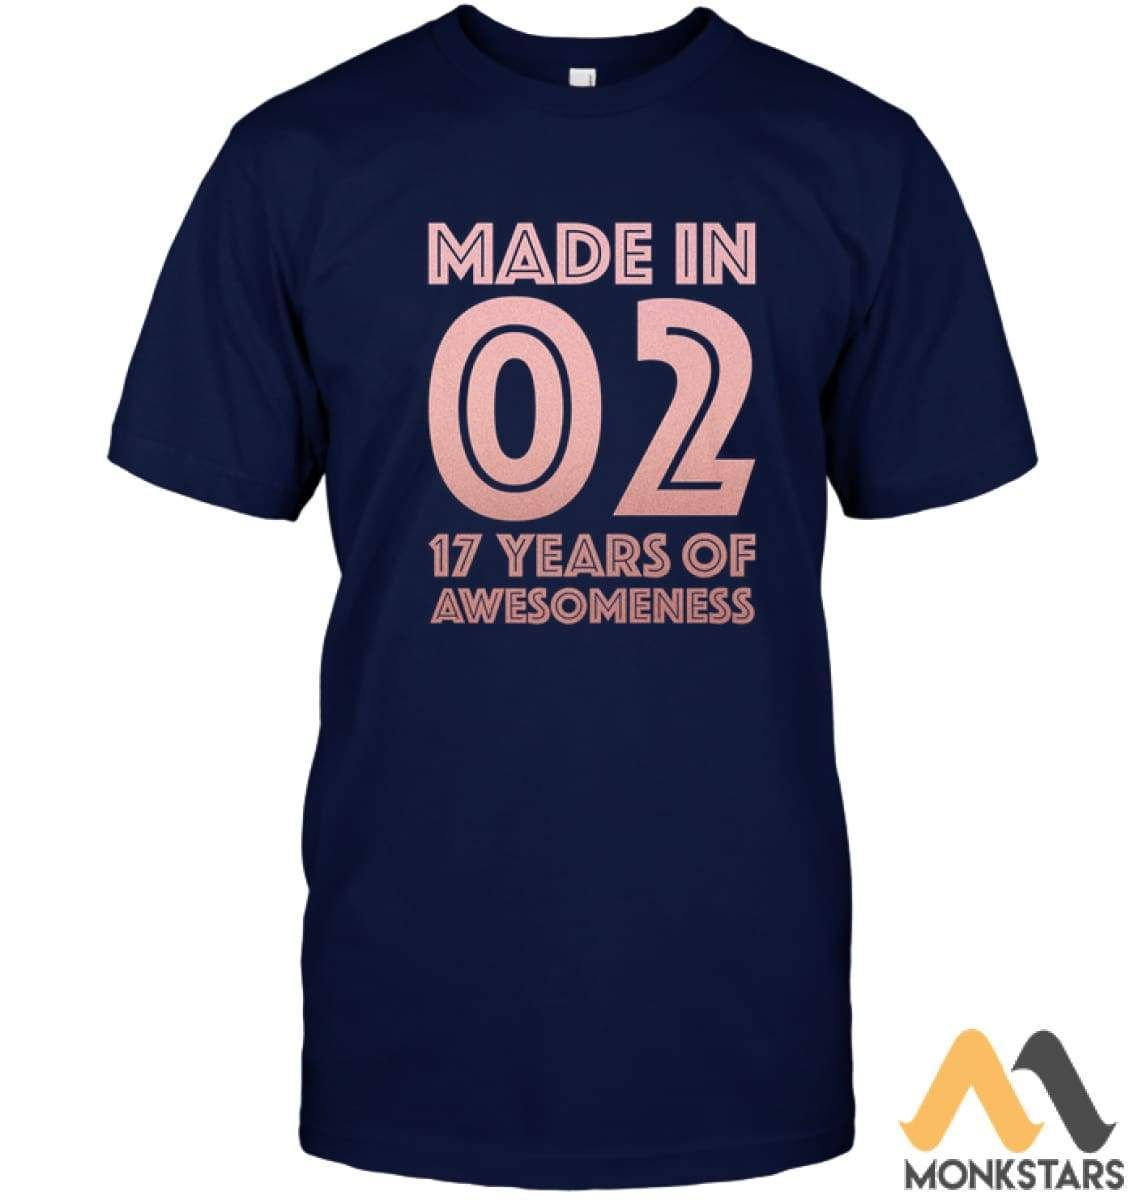 17th Birthday Shirt Girl Age 17 Year Old Gift Teen Daughter - Monkstars Inc. #17thbirthday